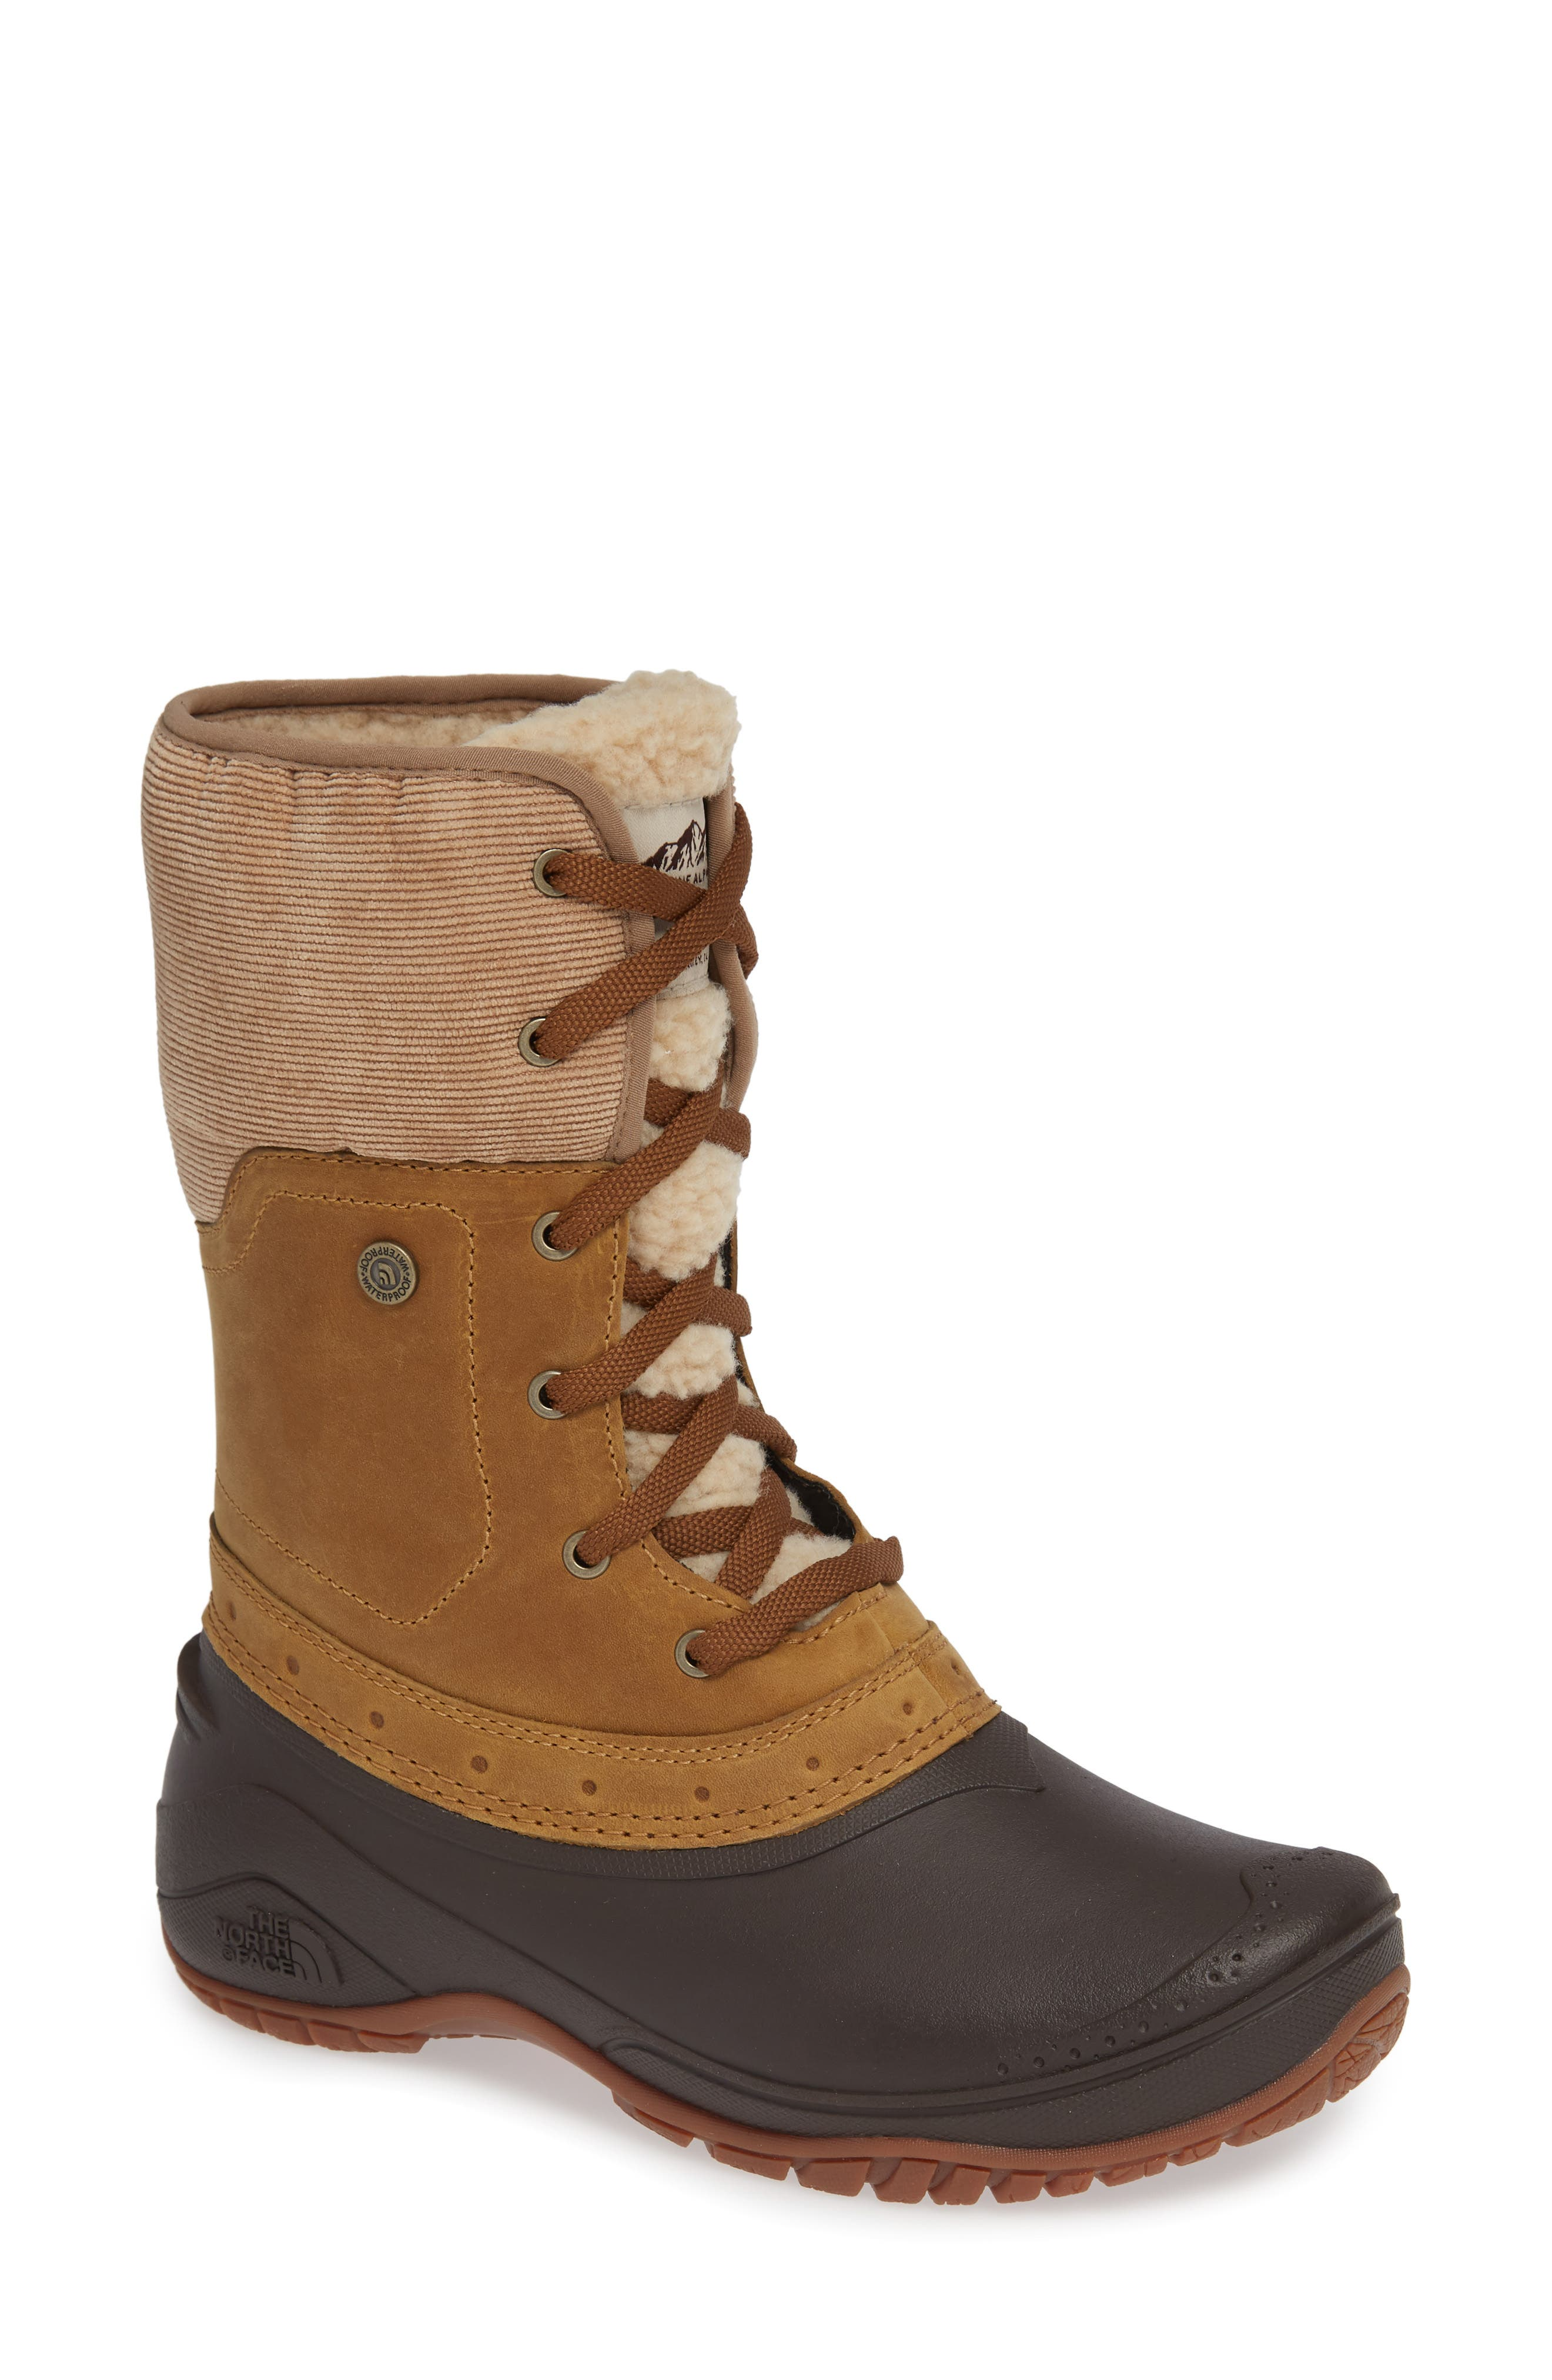 The North Face Shellista Roll Cuff Waterproof Insulated Winter Boot, Brown